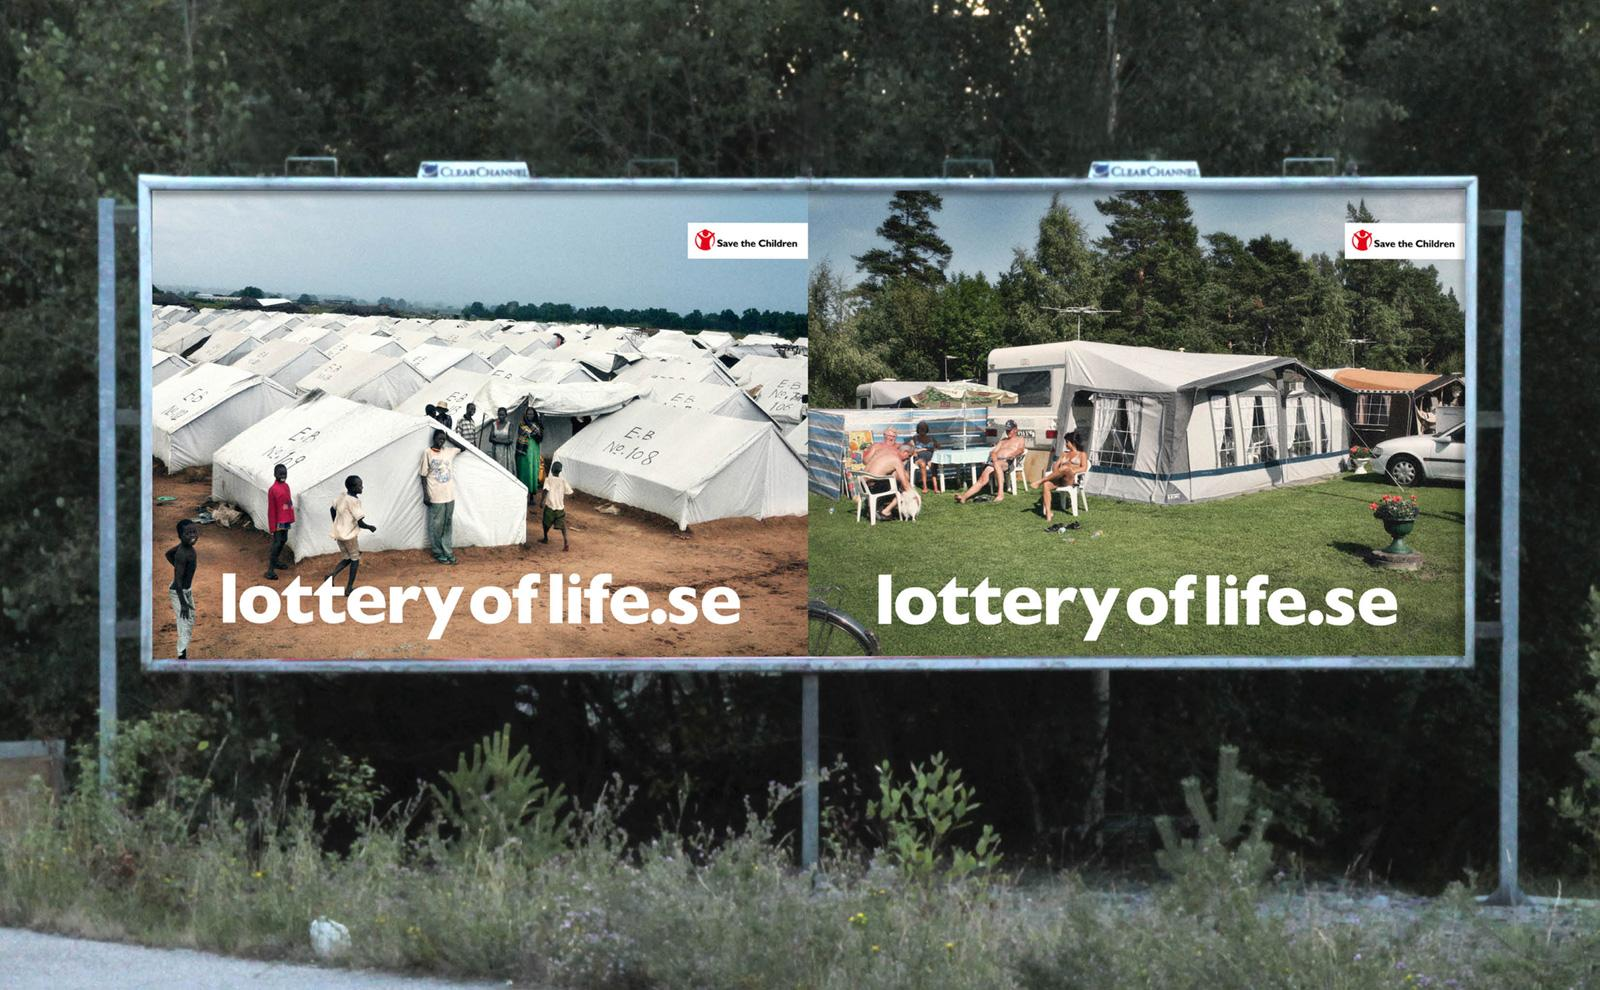 Save the Children Outdoor Ad -  The Lottery of Life, Darfur vs Sweden